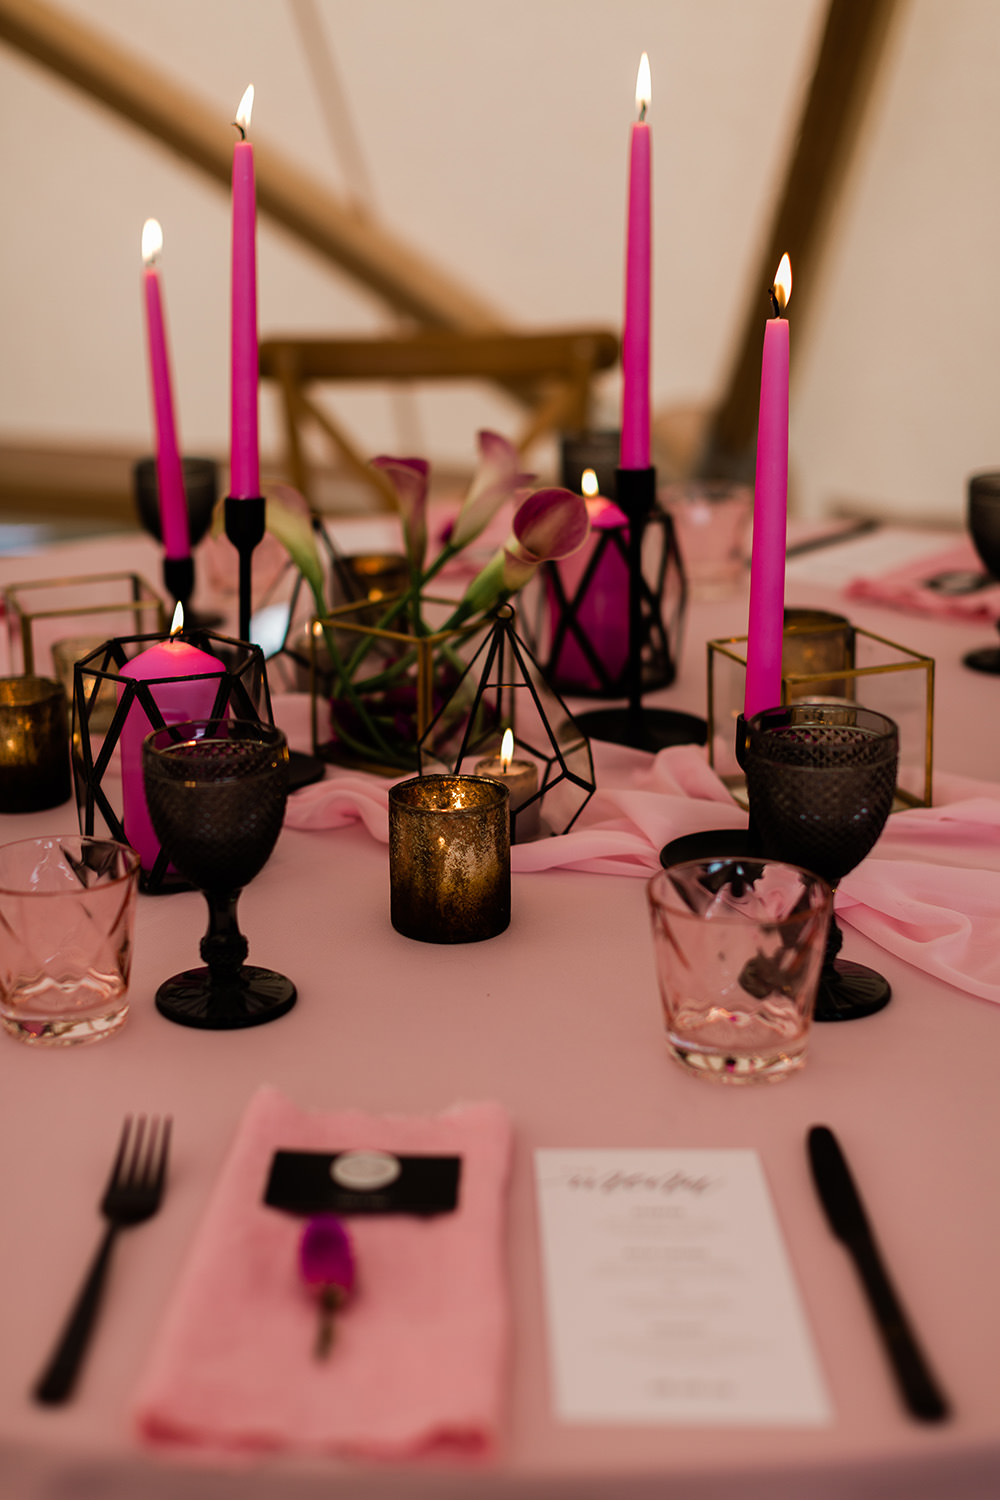 Modern Decor Stationery Table Cloth Runner Black Cutlery Table Candles Pink Geodome Wedding Ideas Louise Henesy Photography